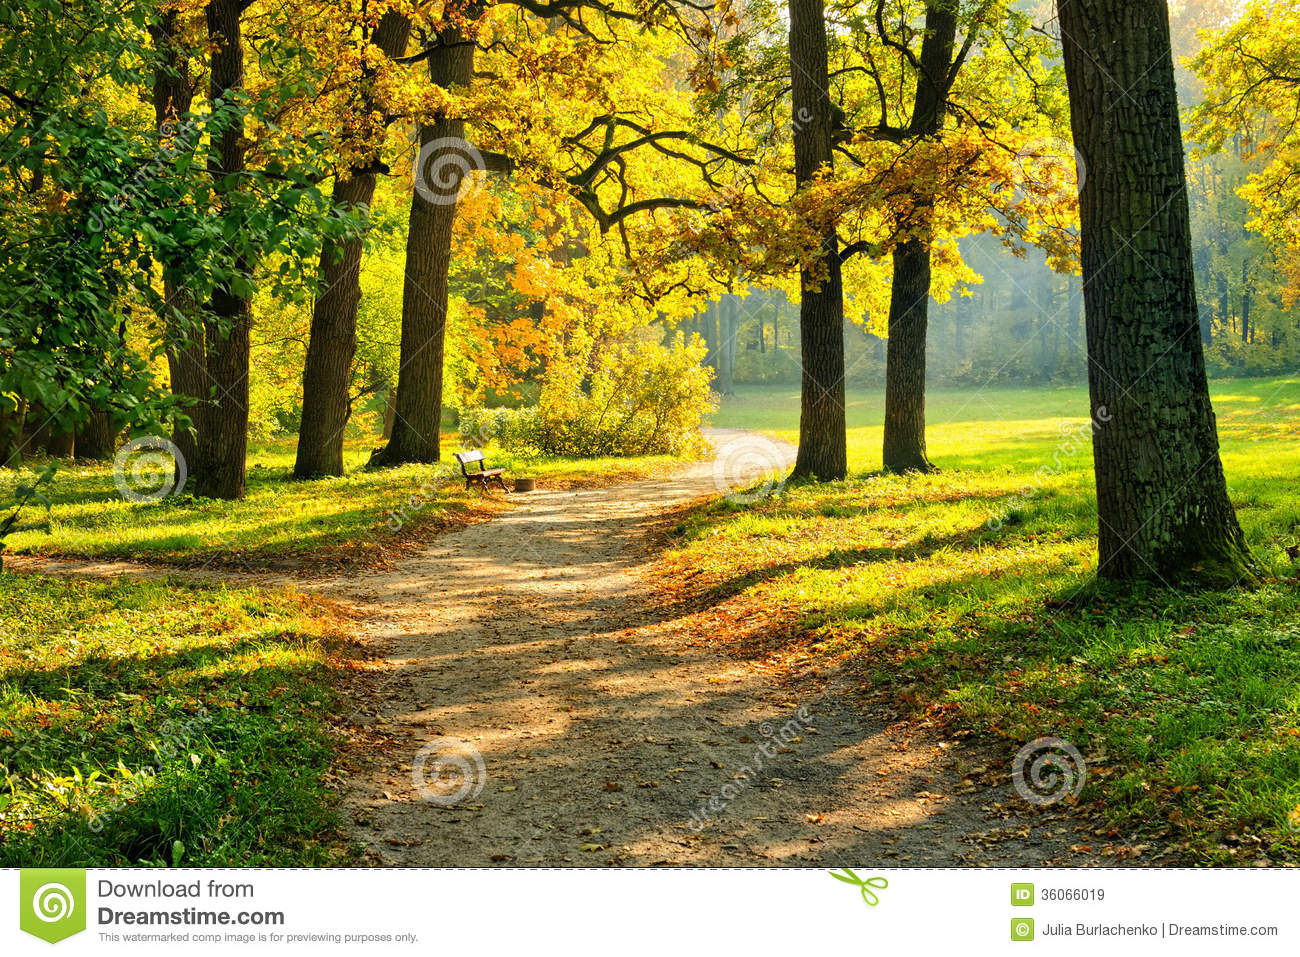 Fall Foliage Wallpaper Hd Warm Autumn Stock Image Image Of Pathway Forest